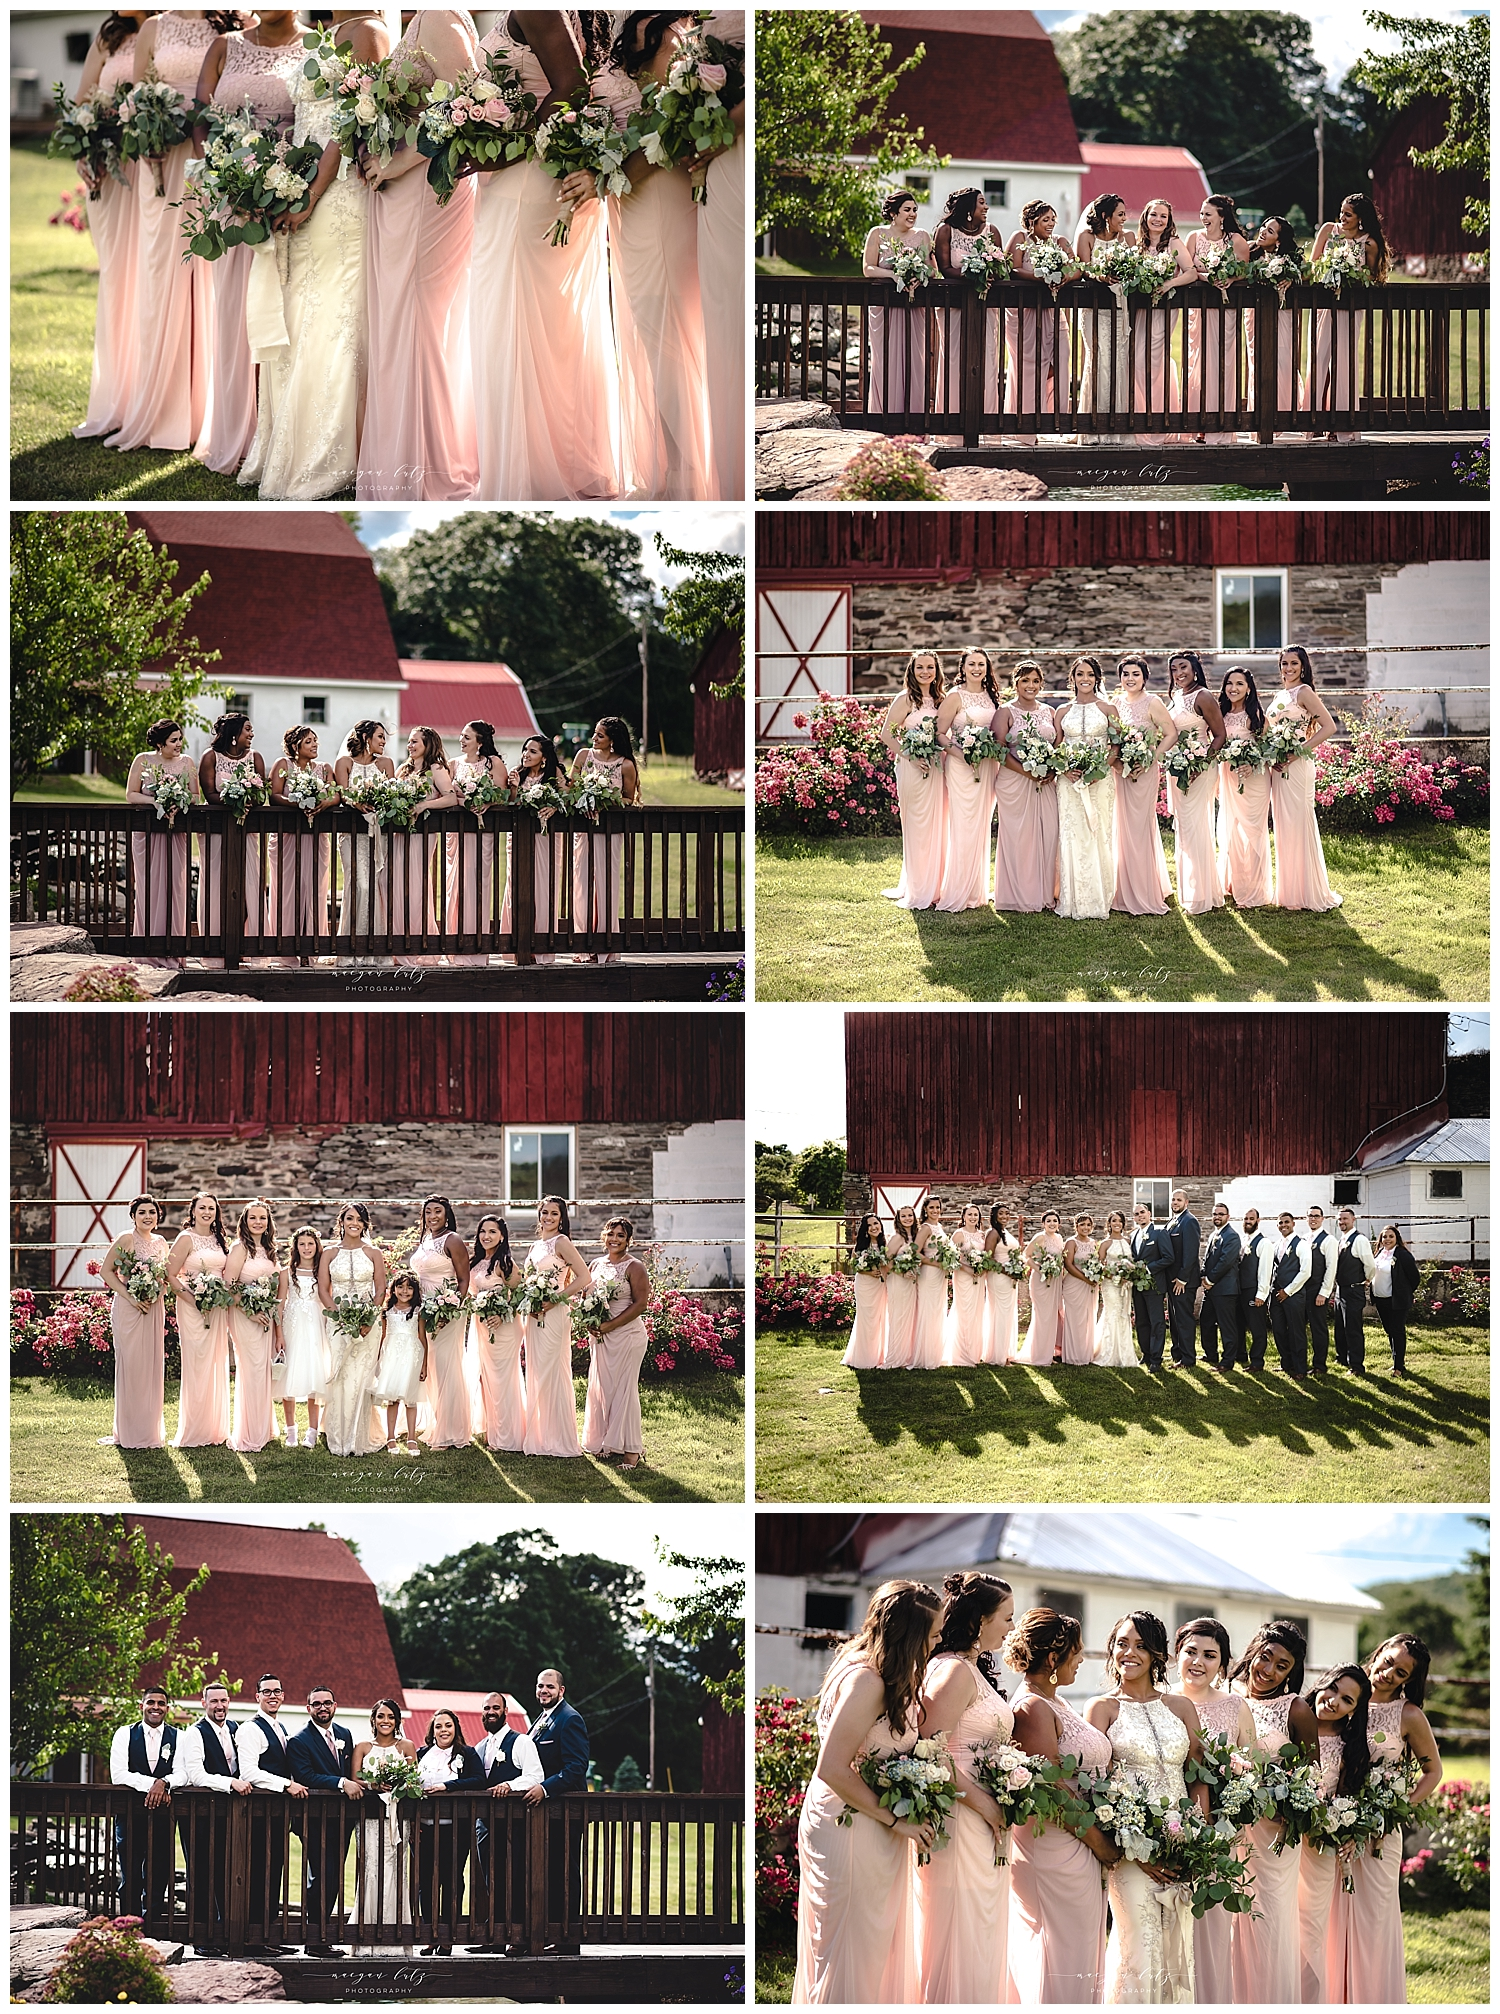 Williamsport Photographer at Wedding at the Barn at Glistening Pond, Falls PA